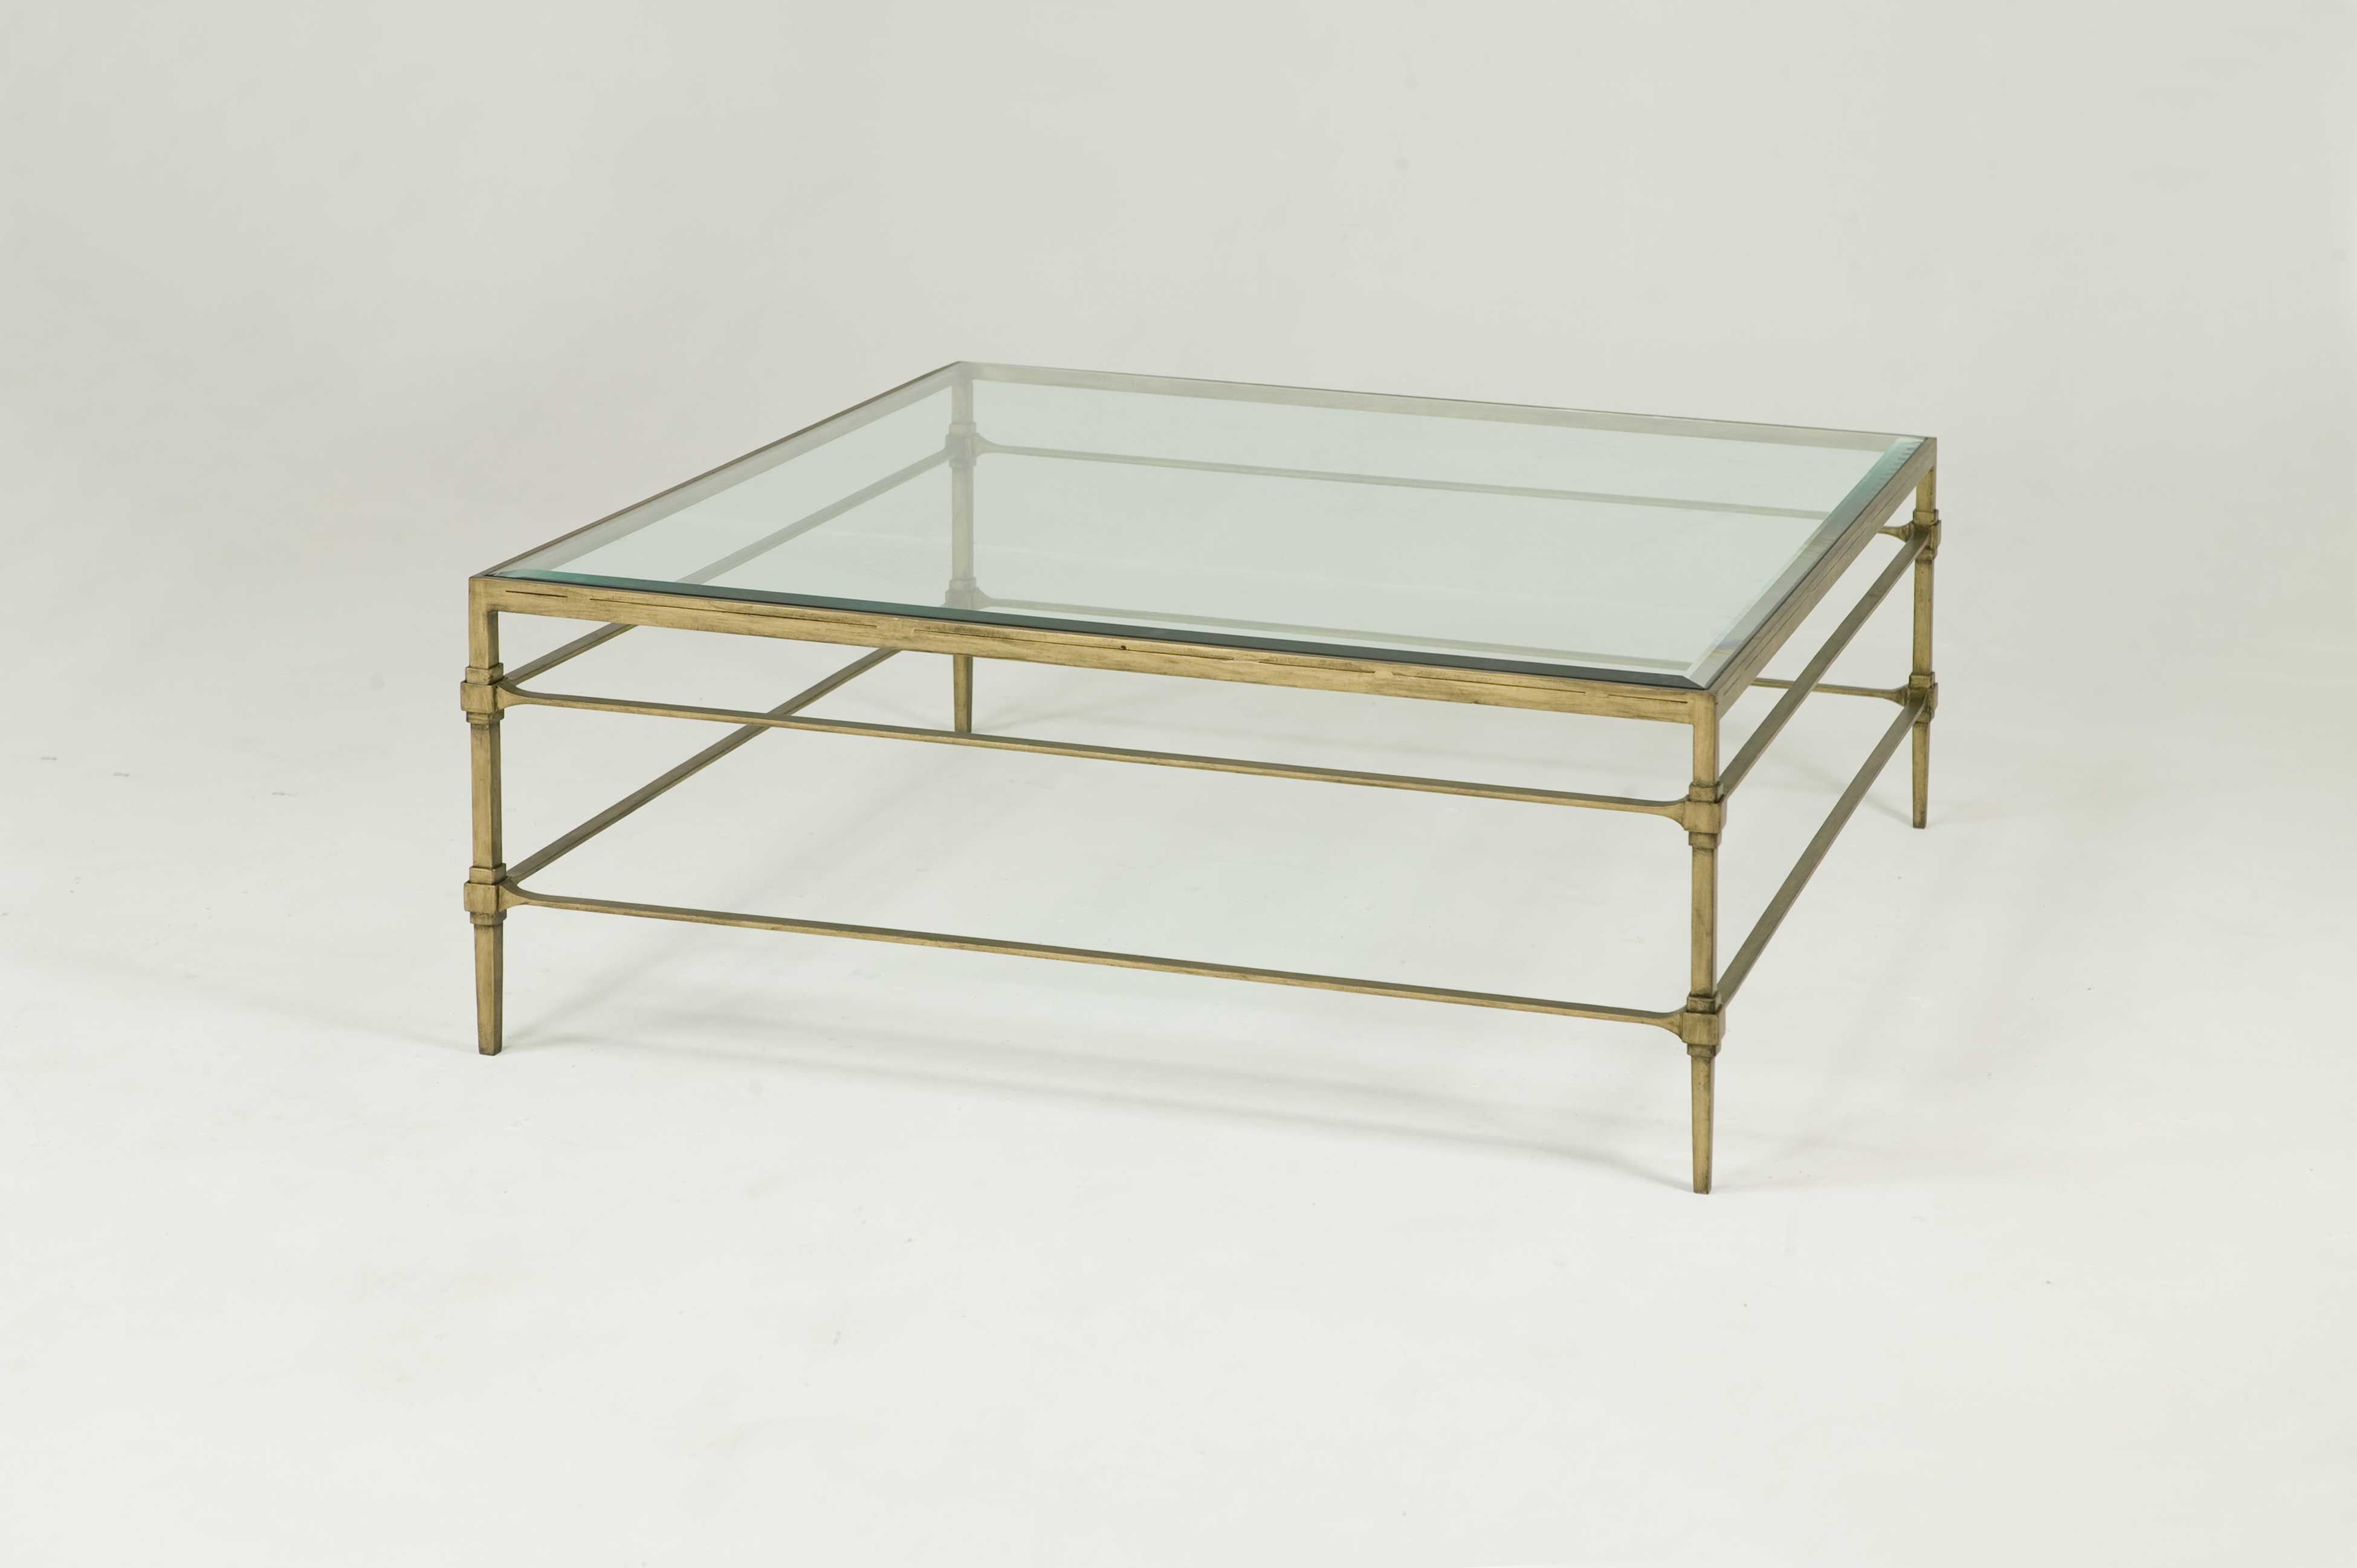 2017 Popular Extra Large Square Coffee Tables Within Dimensions 1310 X 792 Extra Large Square Glass Coffee Table Large Square Coffee Table Coffee Table Square [ 846 x 1220 Pixel ]